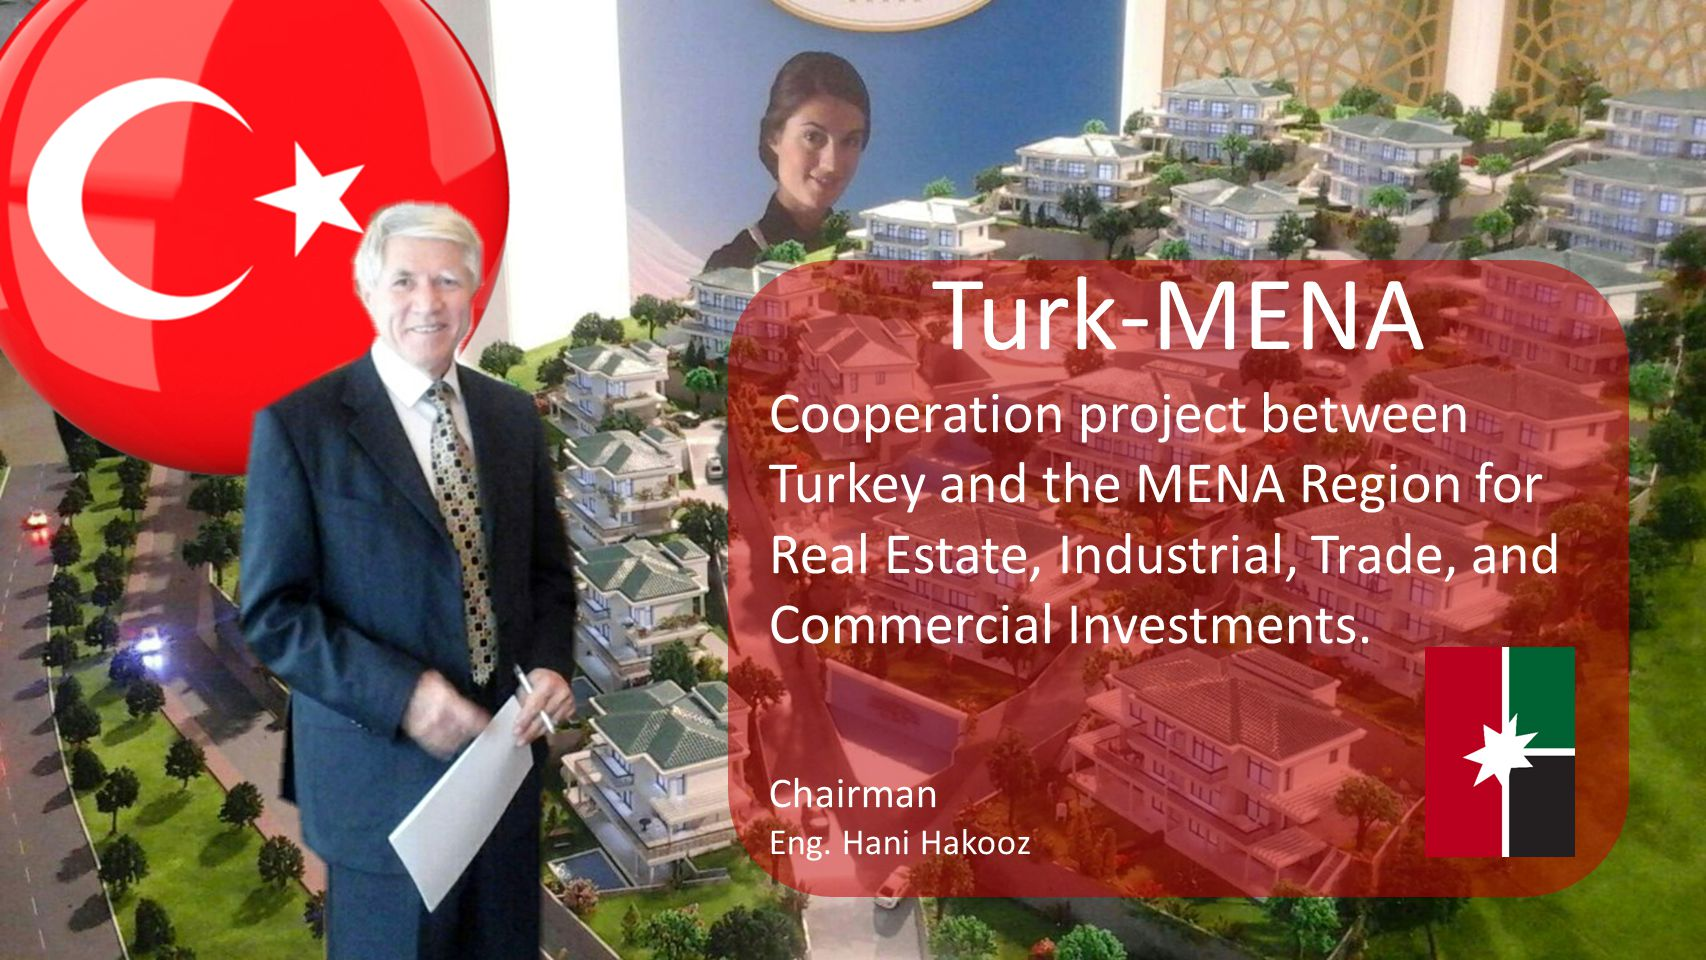 Turk-MENA Cooperation project between Turkey and the MENA Region for Real Estate, Industrial, Trade, and Commercial Investments.